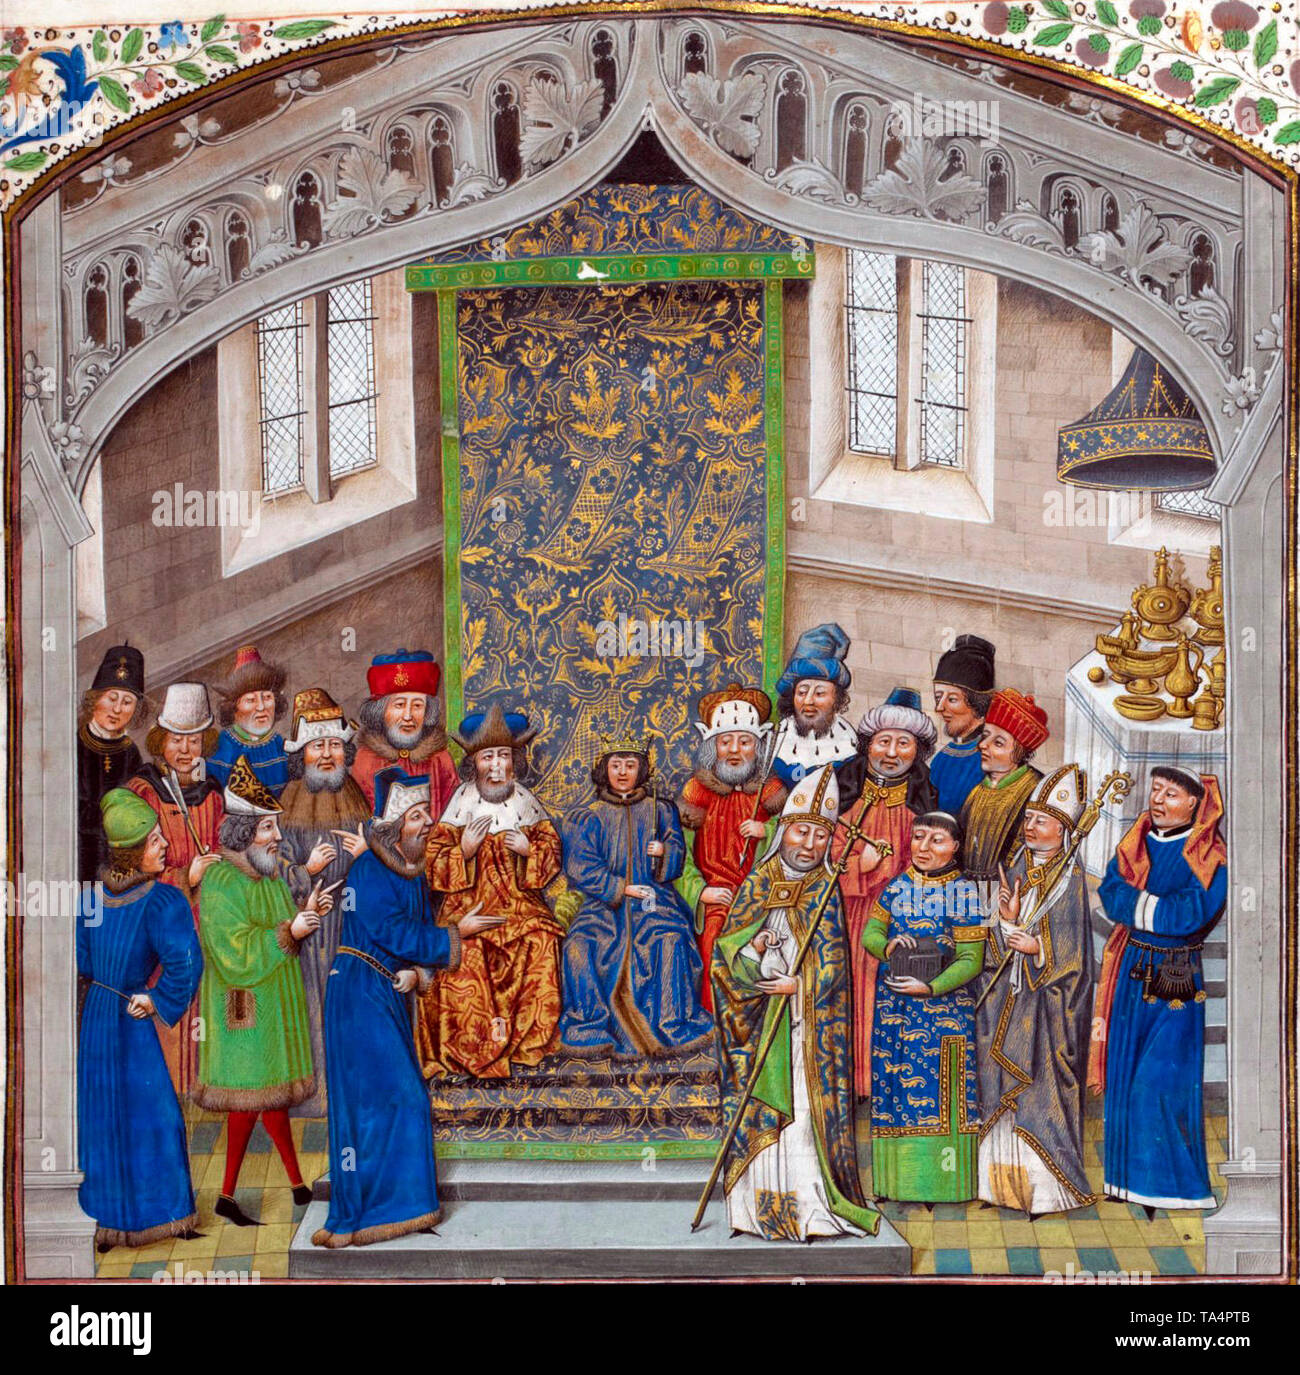 King Richard II of England with his court after his coronation. 15th century - Stock Image